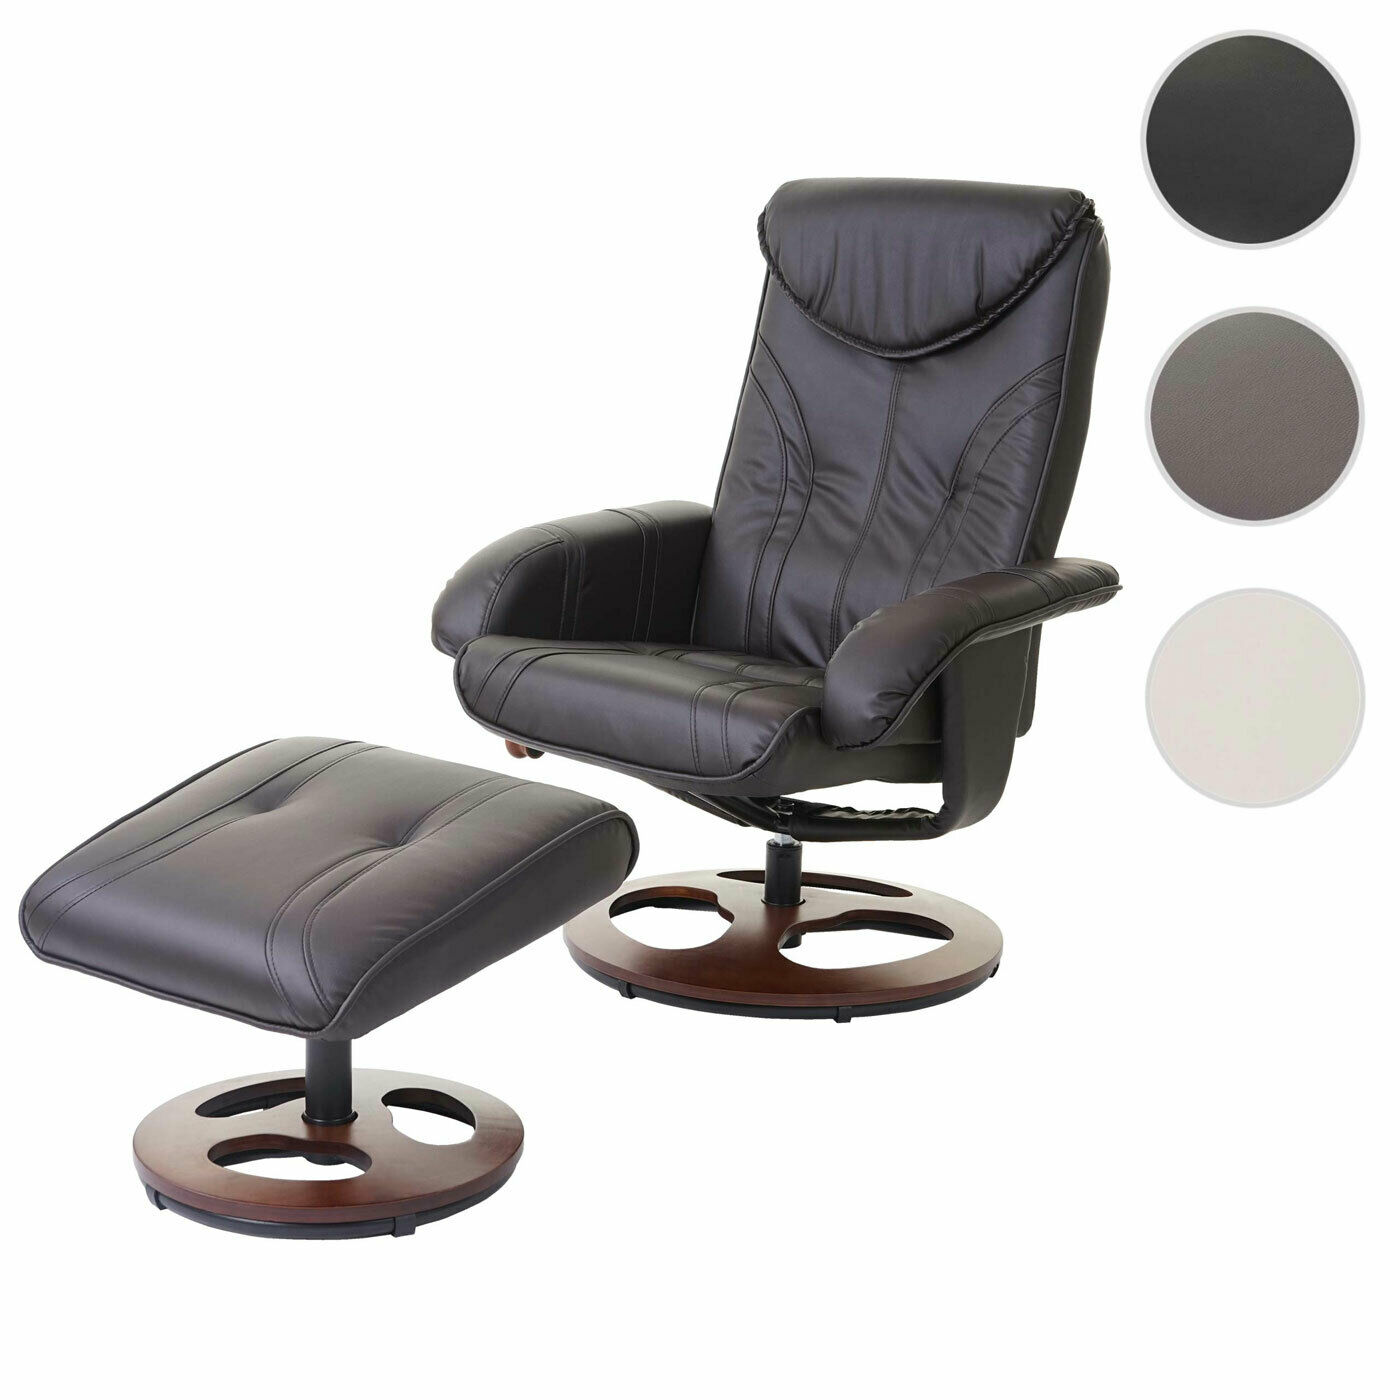 S-Racer Relaxsessel Gaming-Sessel schwarz//weiß B-Ware Fernsehsessel MCW-E84